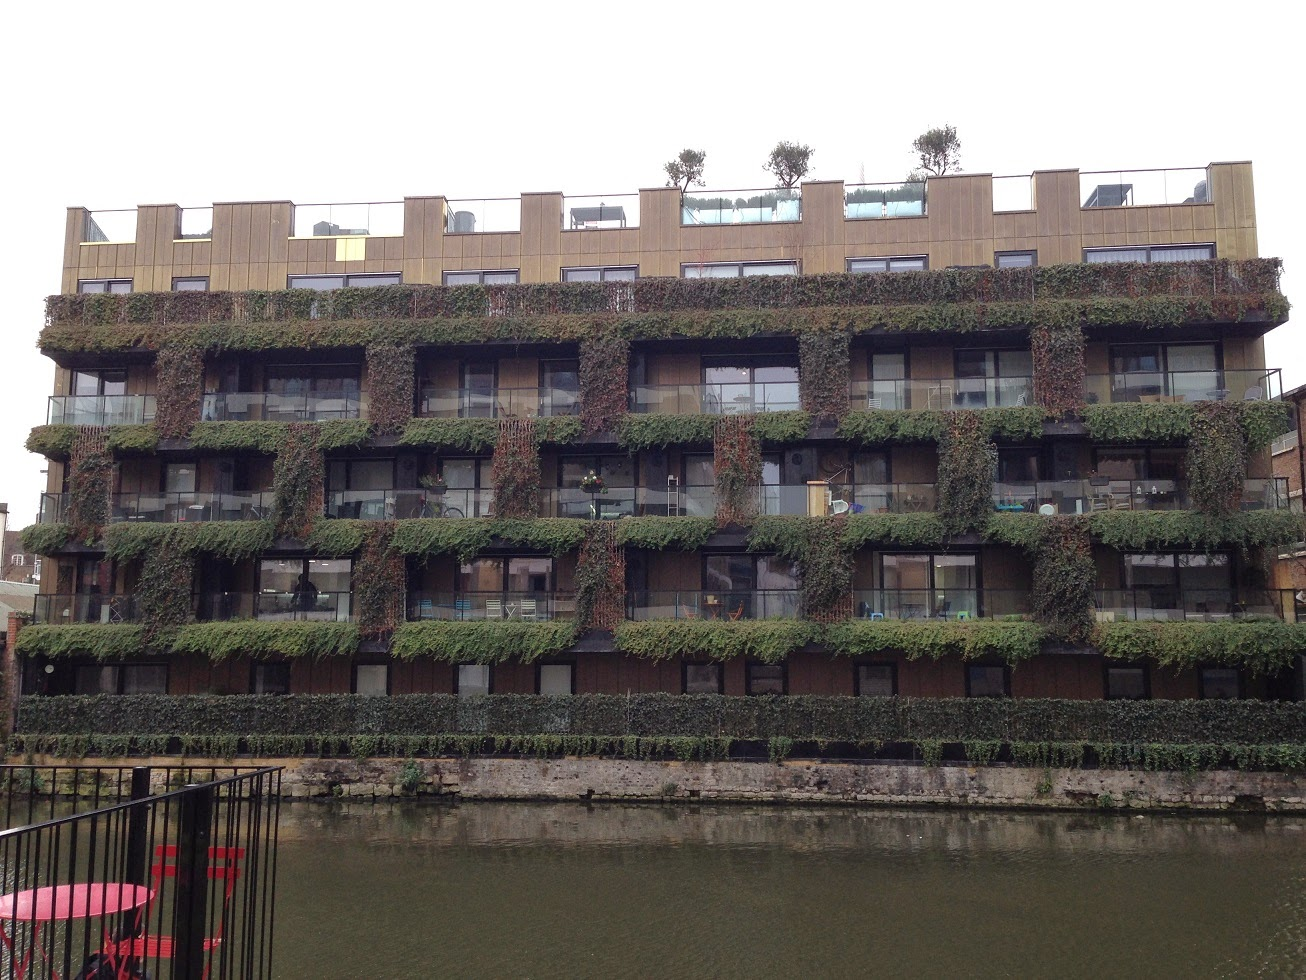 Urban topiary, Regent's Canal, London